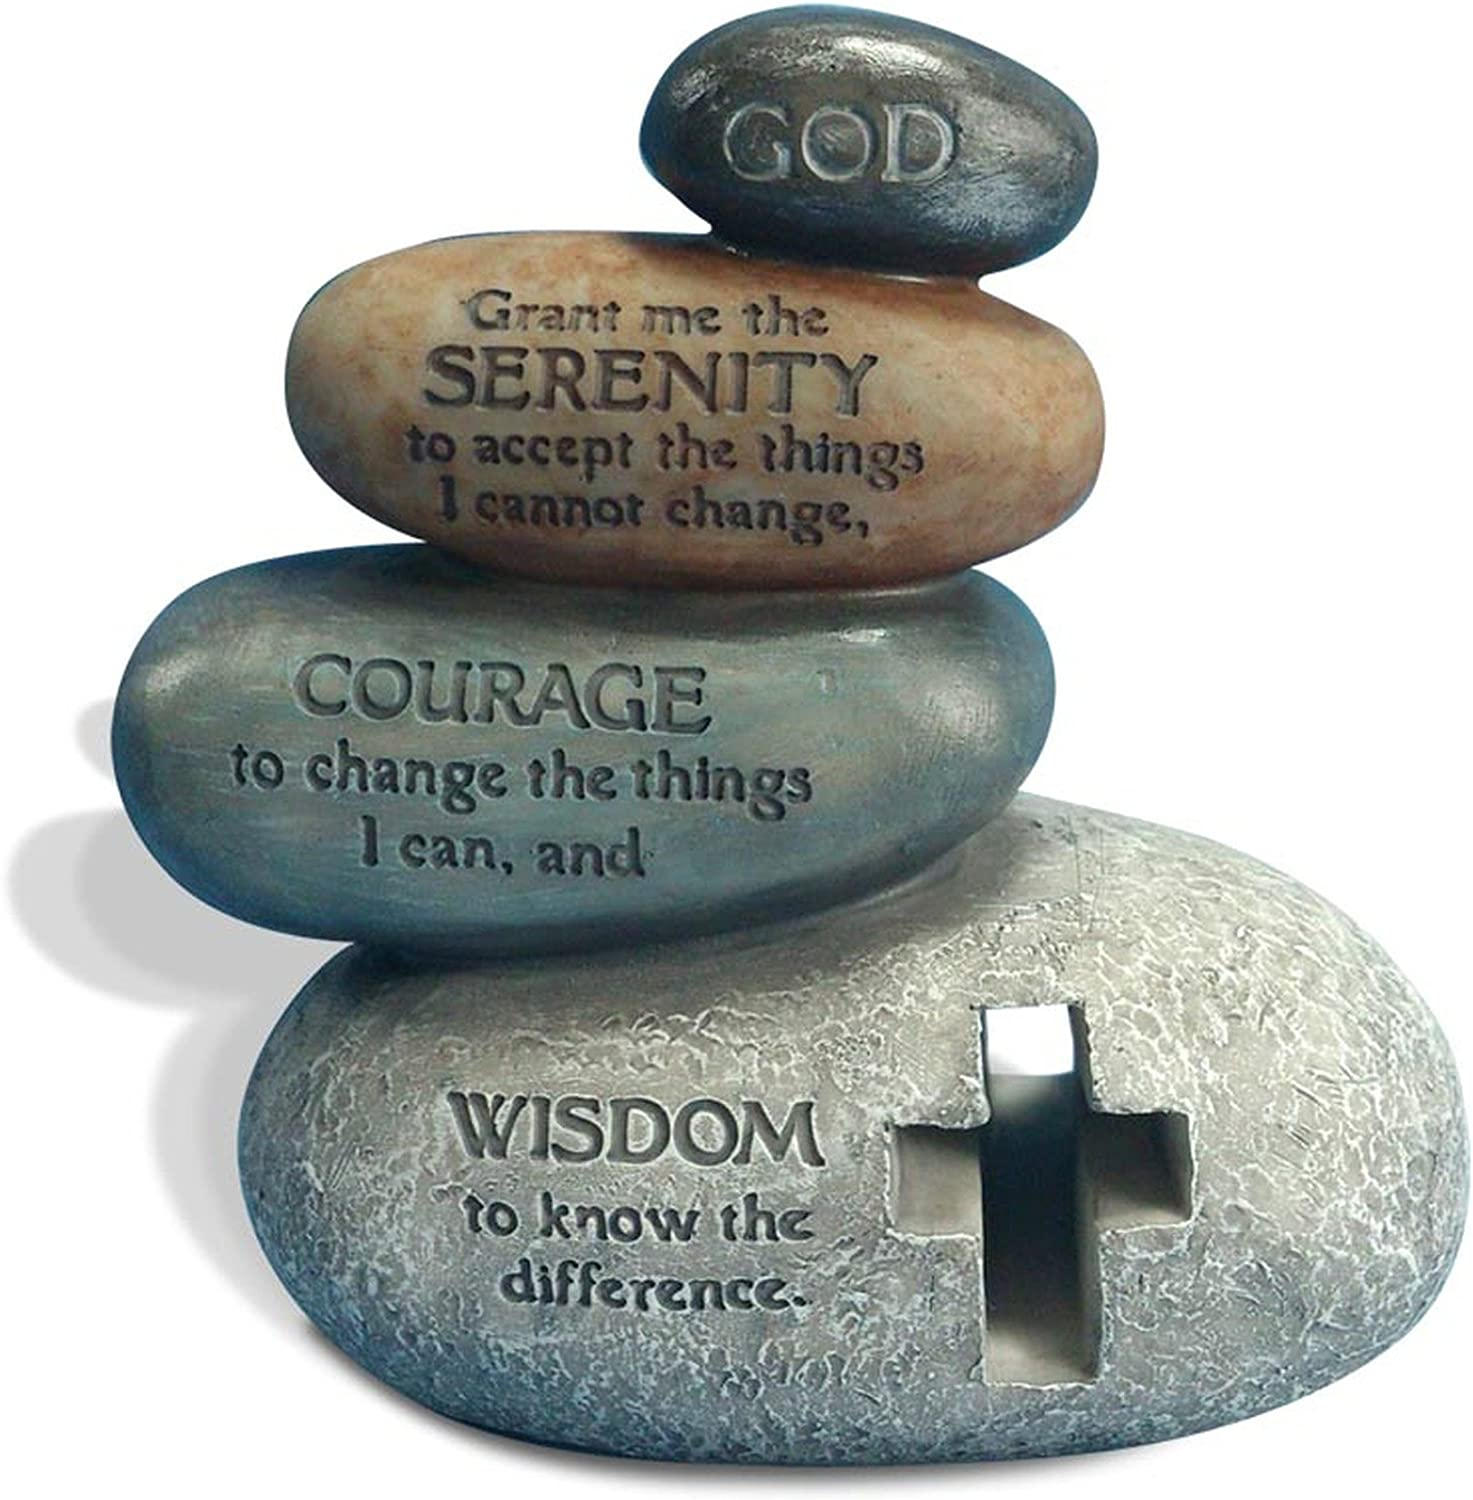 Enesco Legacy of Love by Gregg Gift Stacked Serenity Prayer Stones Stone Resin Figurine, 5.5""